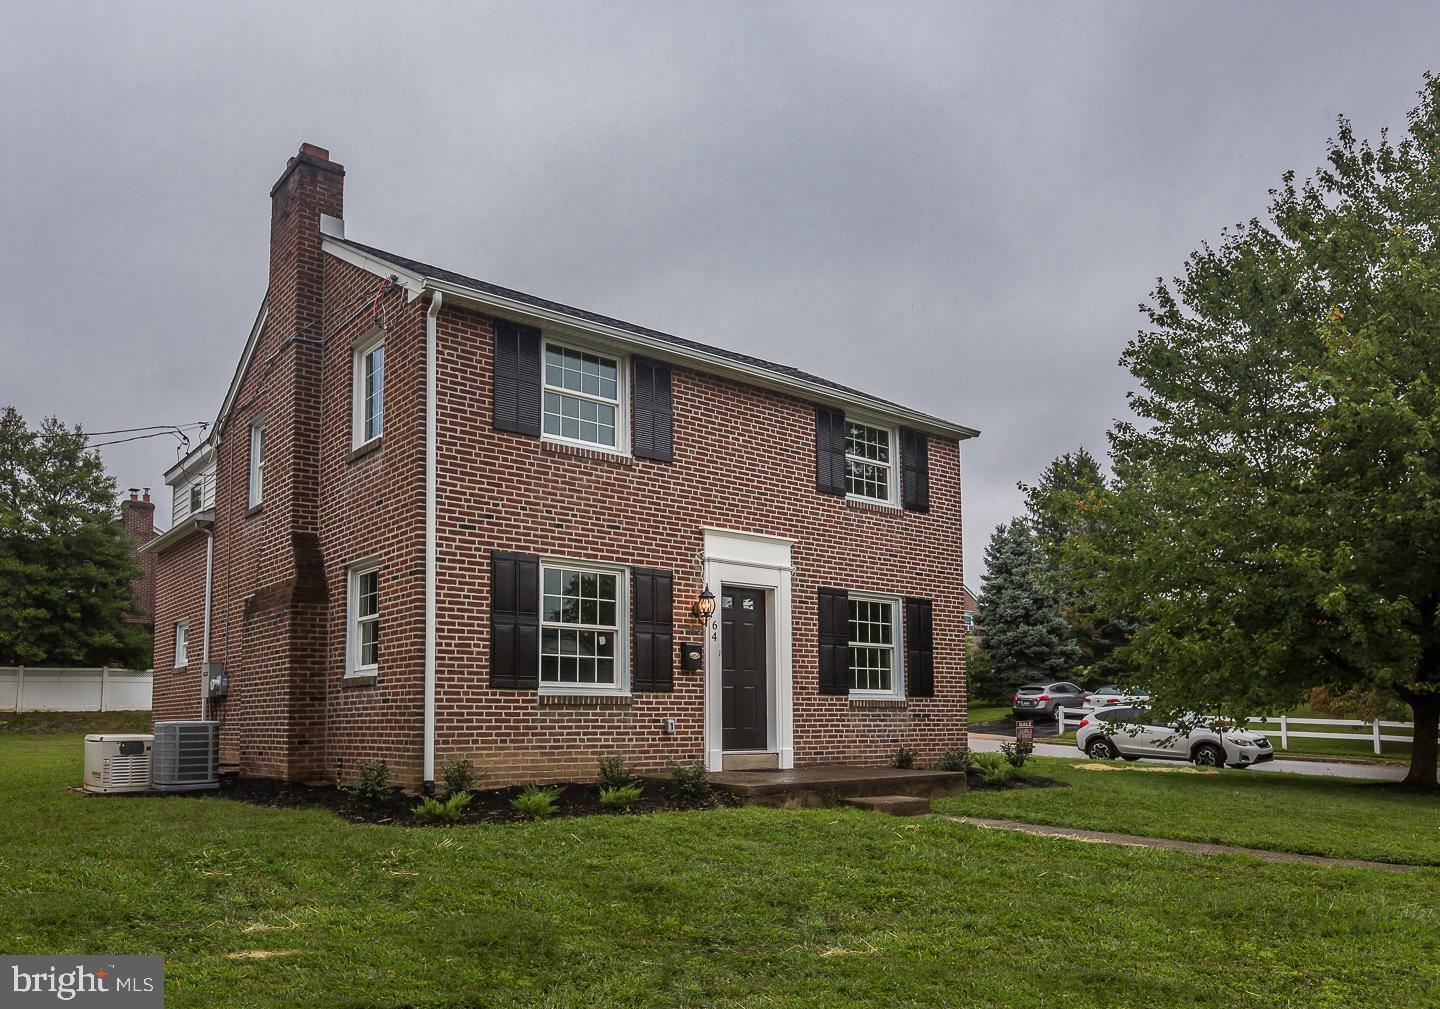 64 N SPROUL ROAD, BROOMALL, PA 19008